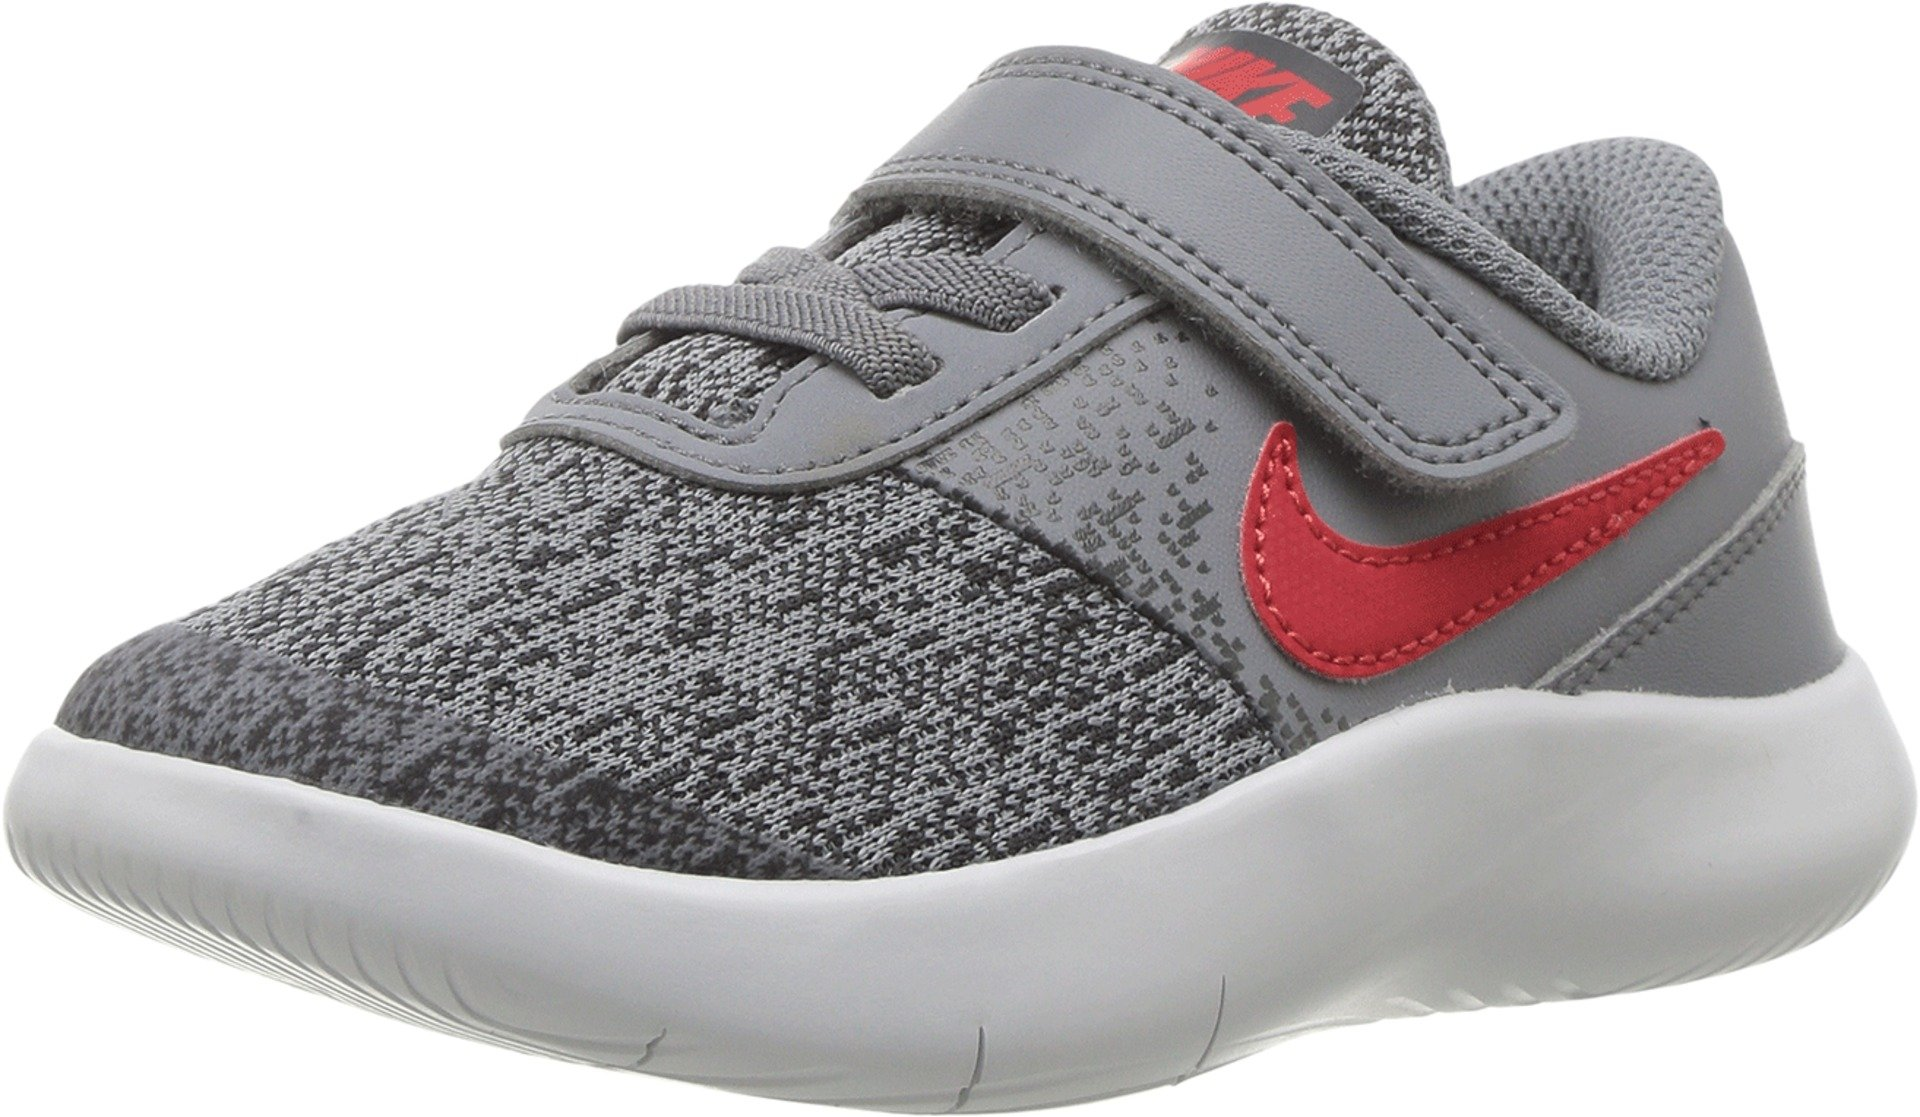 Nike Boy's Flex Contact (TDV) Running Shoes (4 Toddler M, Cool Grey/University Red-Anthracite) by Nike